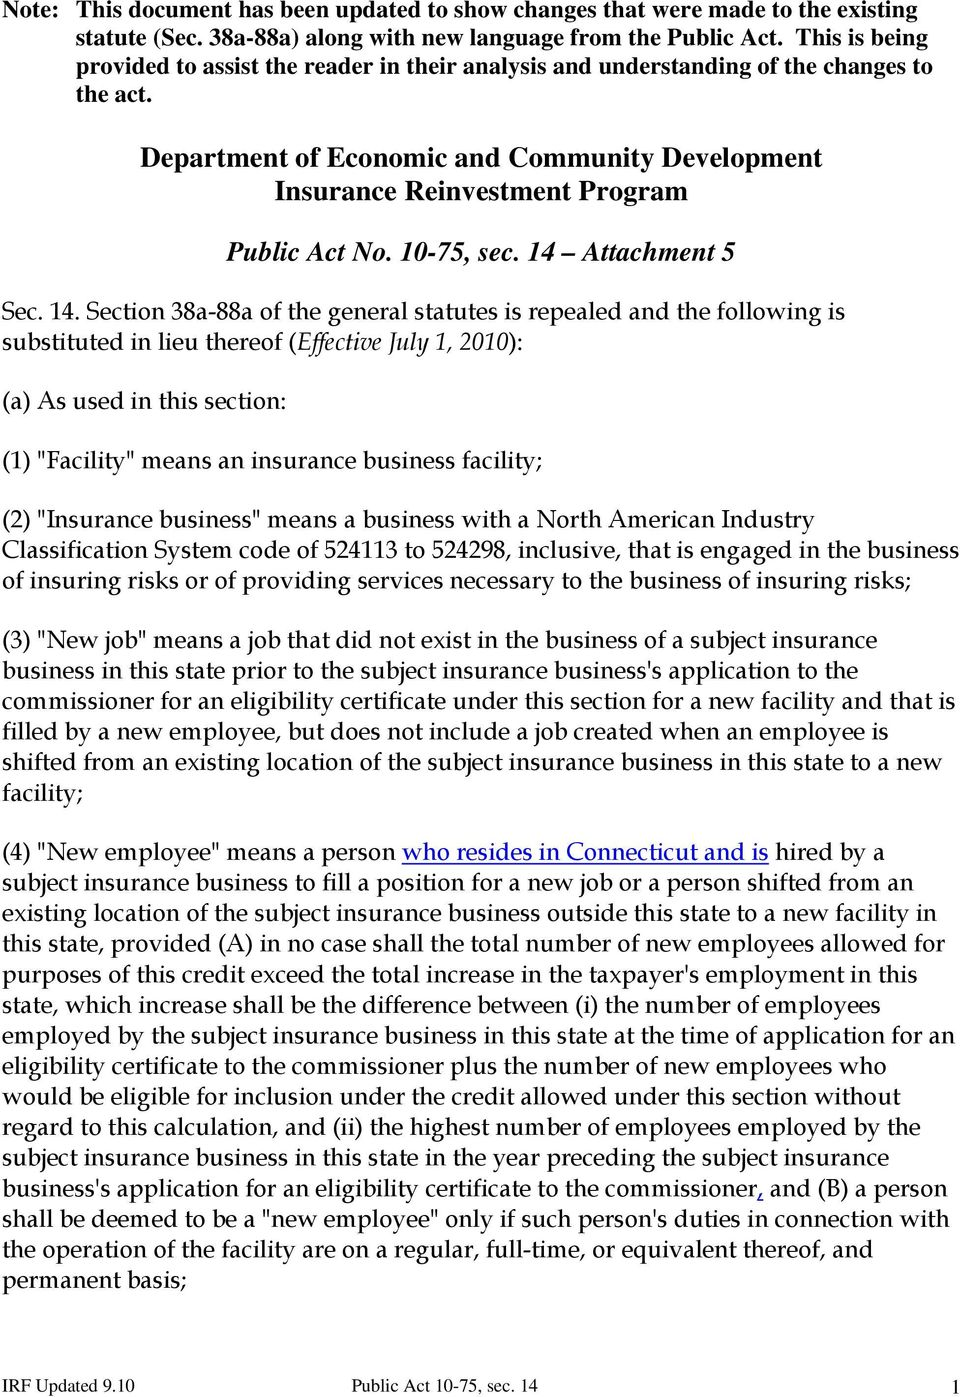 Department of Economic and Community Development Insurance Reinvestment Program Public Act No. 10-75, sec. 14